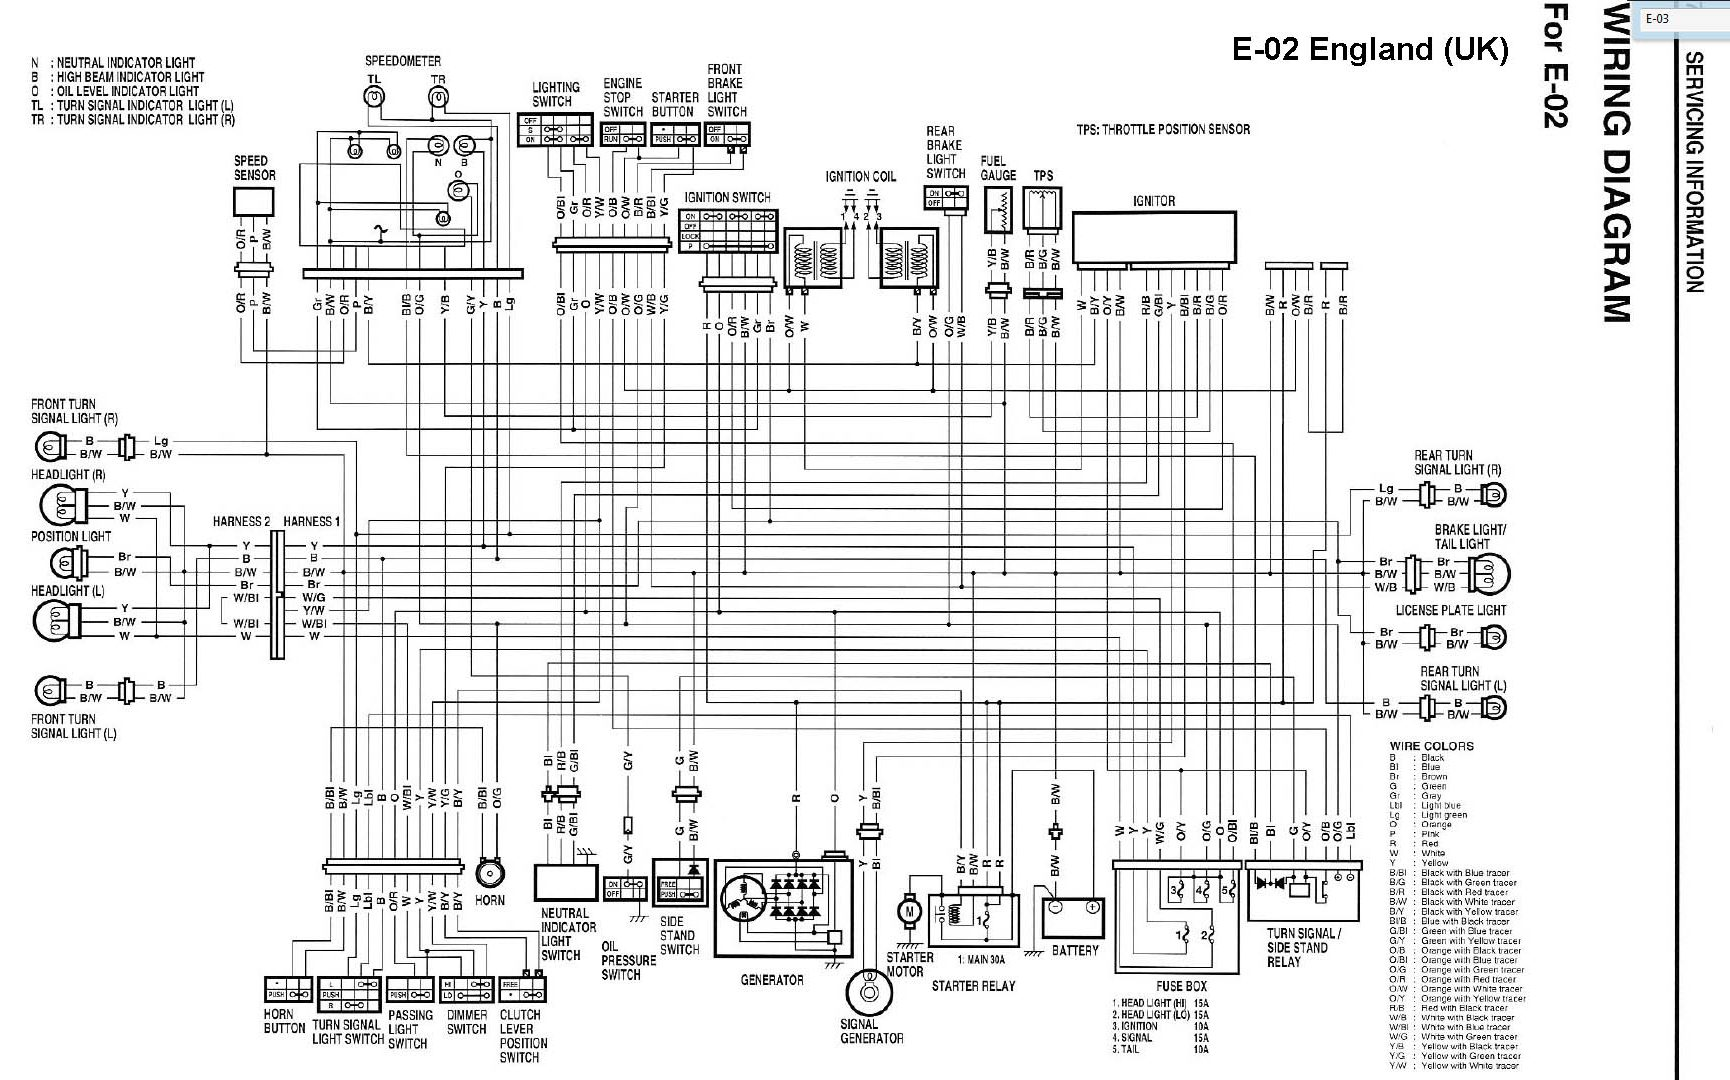 Jawa Wiring Diagram on bajaj wiring diagram, kia wiring diagram, nissan wiring diagram, garelli wiring diagram, tomos wiring diagram, chevrolet wiring diagram, kawasaki wiring diagram, hunter wiring diagram, toyota wiring diagram, kreidler wiring diagram, new holland wiring diagram, norton wiring diagram, dodge wiring diagram, husaberg wiring diagram, ossa wiring diagram, ajs wiring diagram, smc wiring diagram, cf moto wiring diagram, beta wiring diagram, honda wiring diagram,